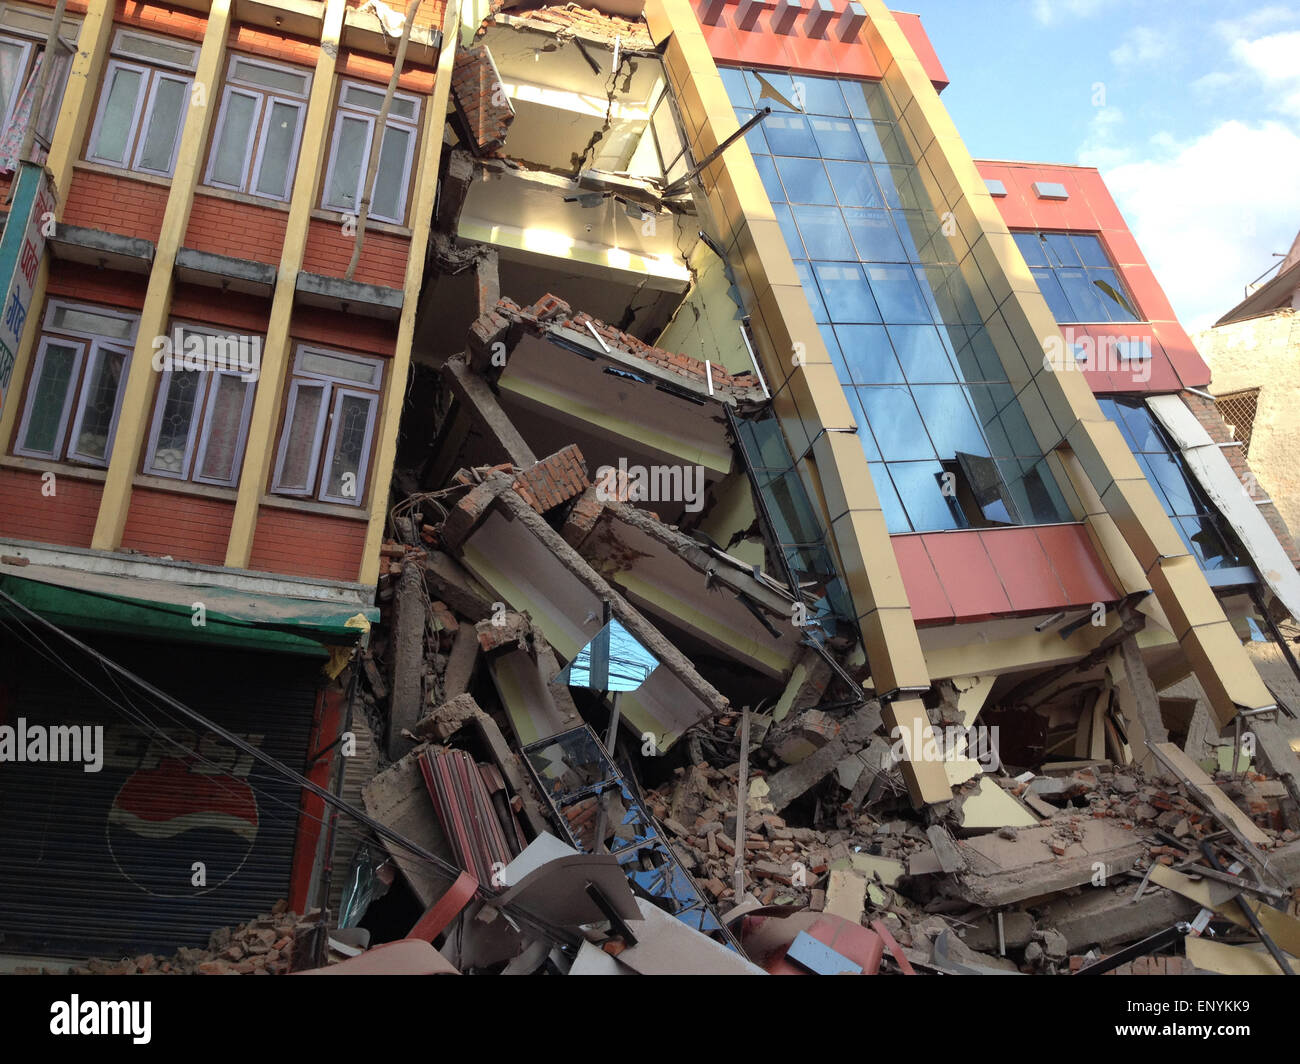 Kathmandu, Nepal. 12th May, 2015. A fresh earthquake has occurred in Nepal. Photo shows damage caused today in Mitranagar Stock Photo